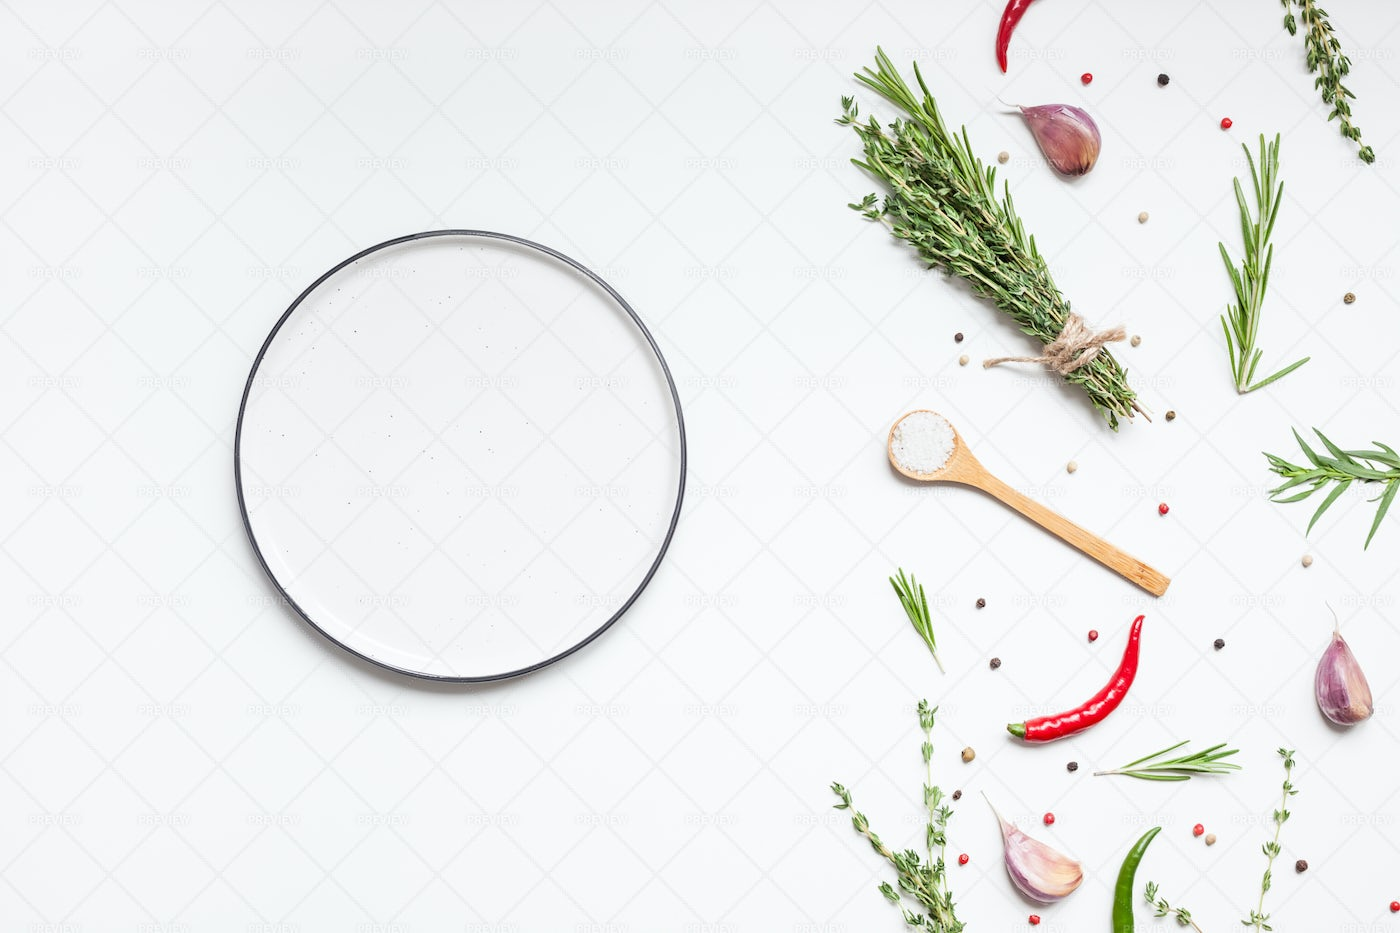 Plate With Herbs And Spices: Stock Photos